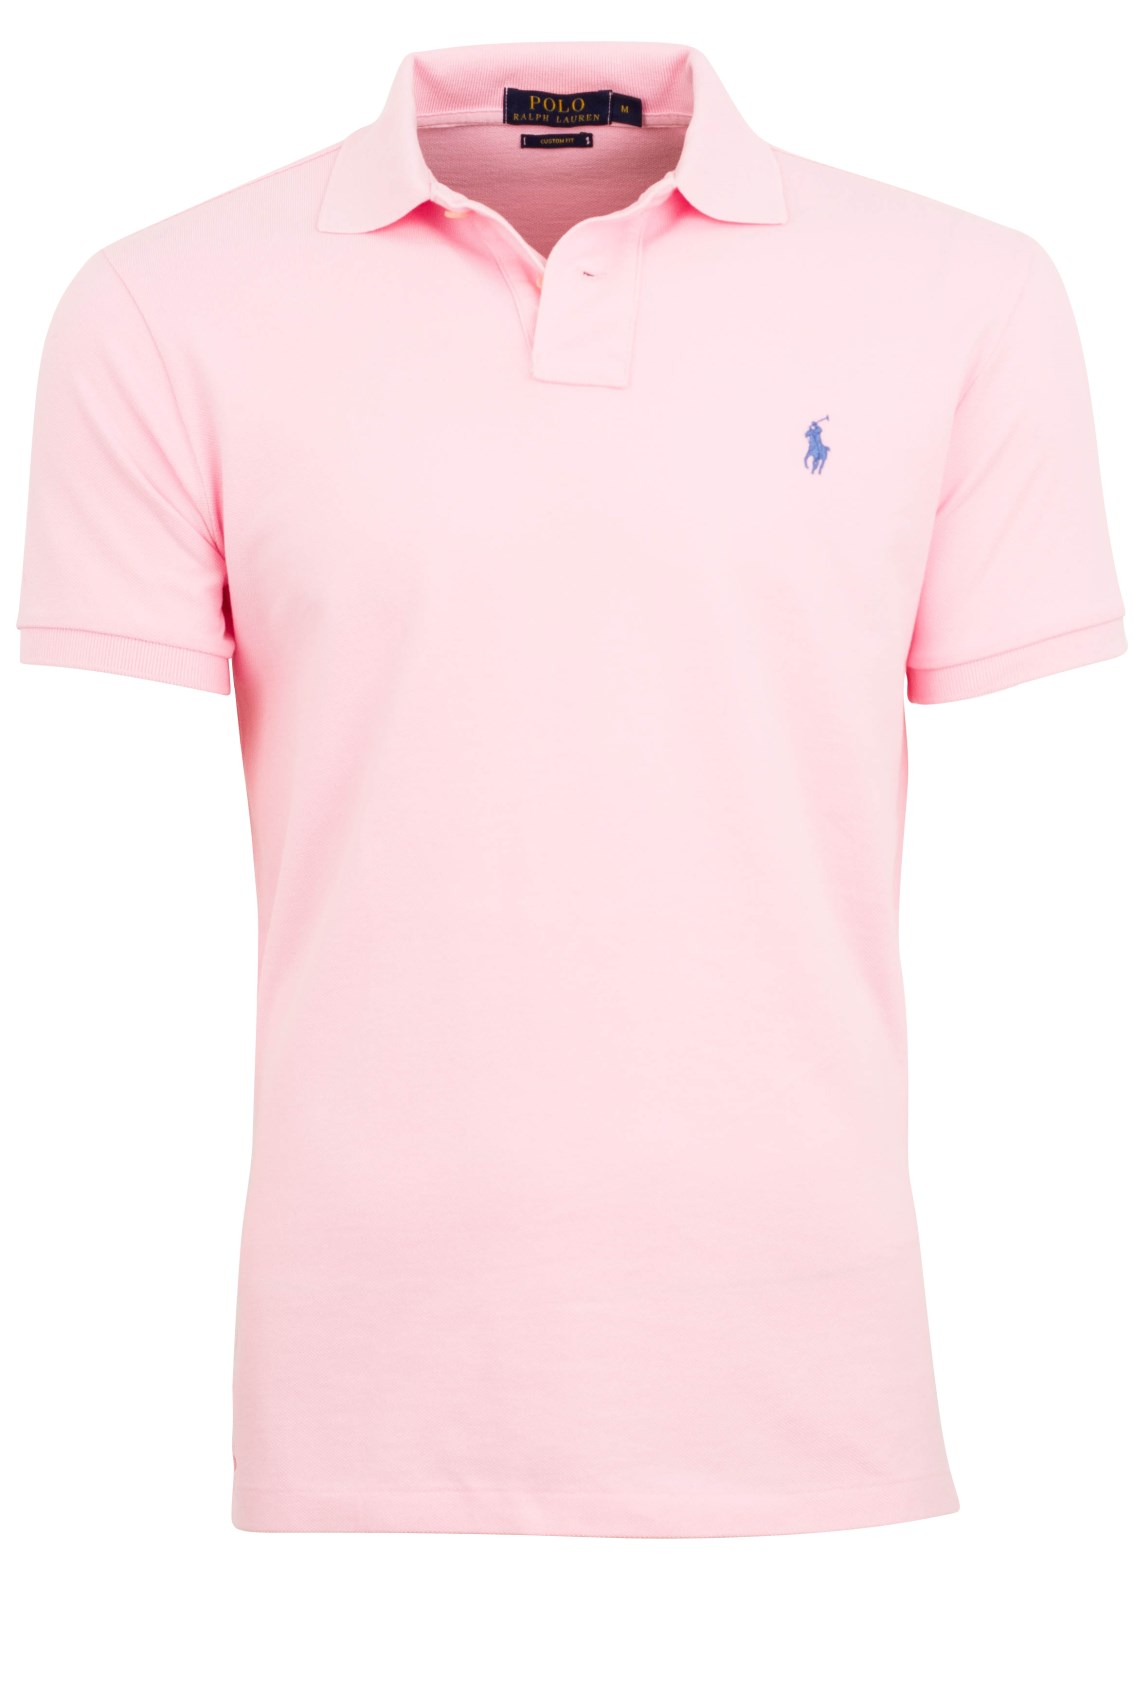 Ralph Lauren polo custom fit carmel pink